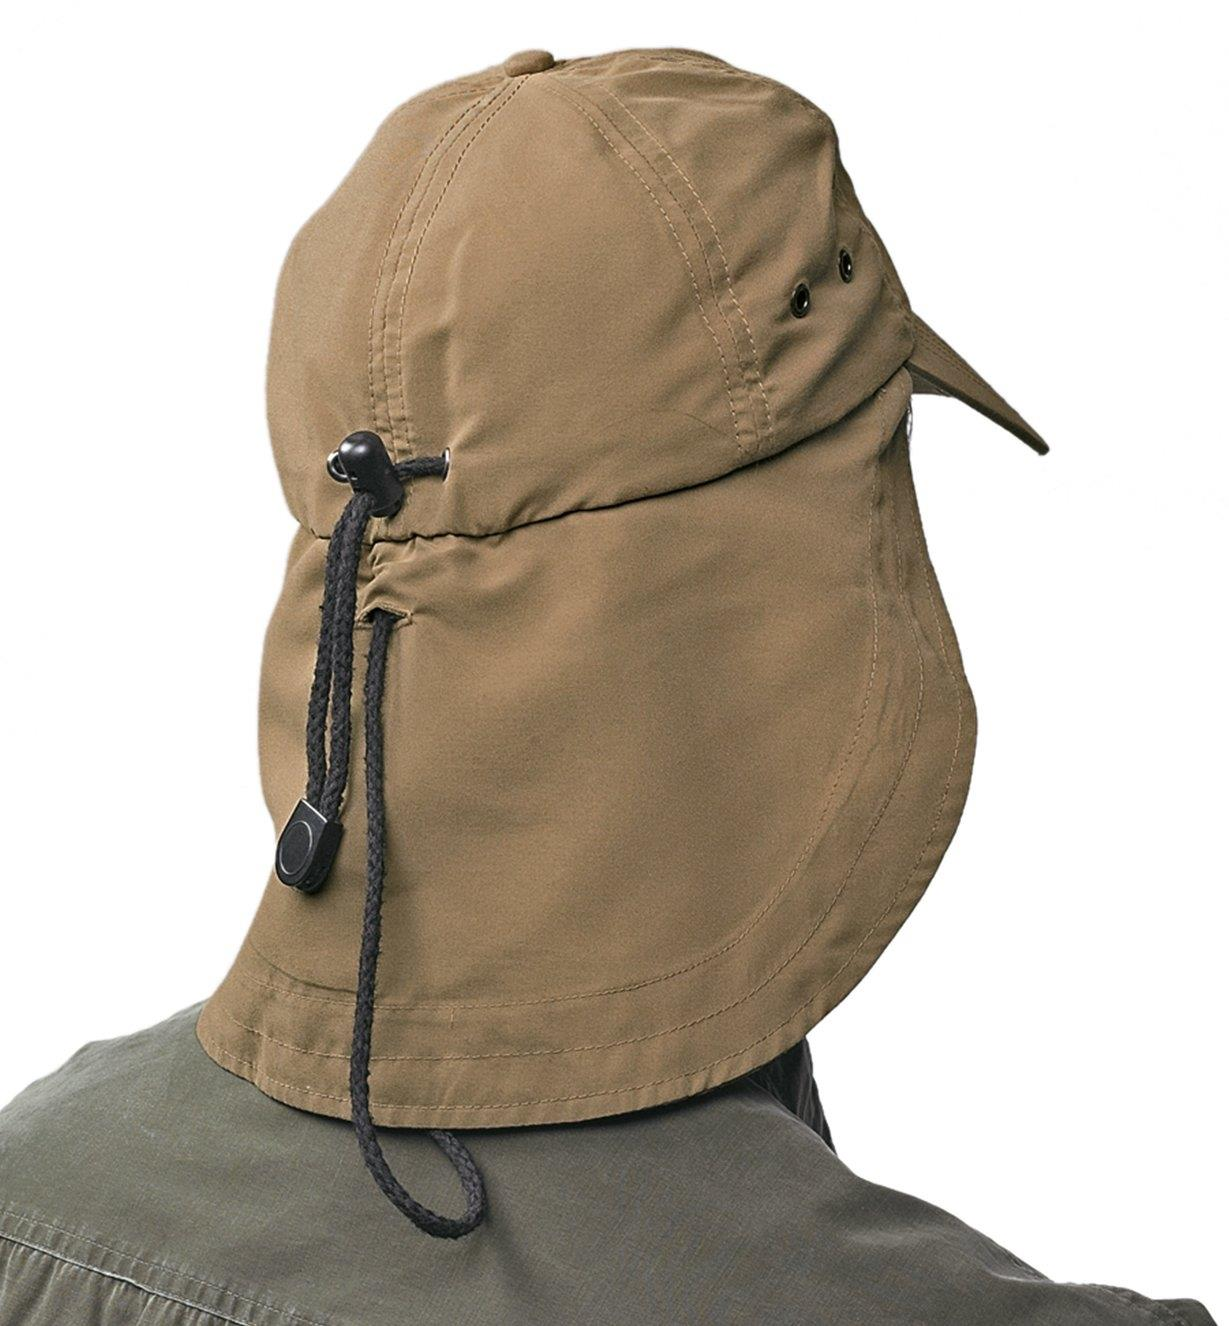 Back view of the Lee Valley Sun Cap with the flap down